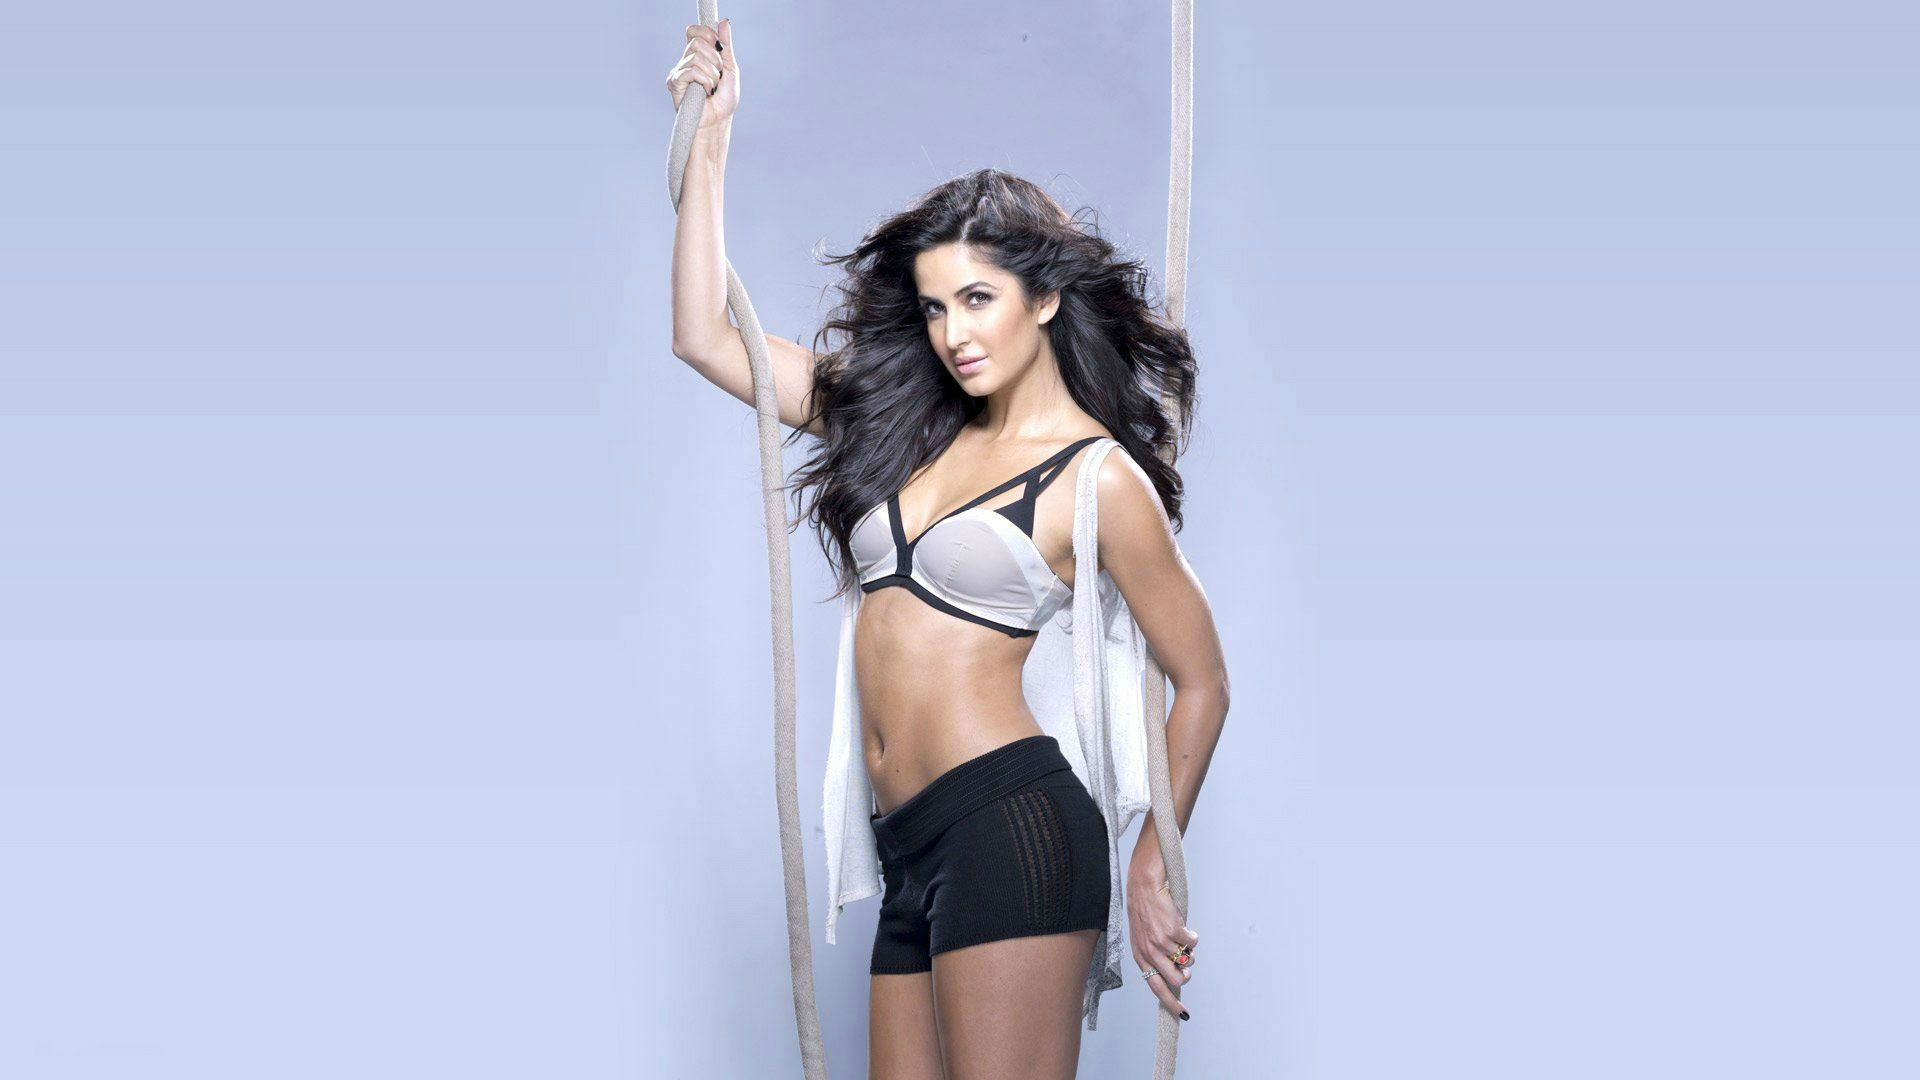 for some months there have been rumors that katrina kaif has